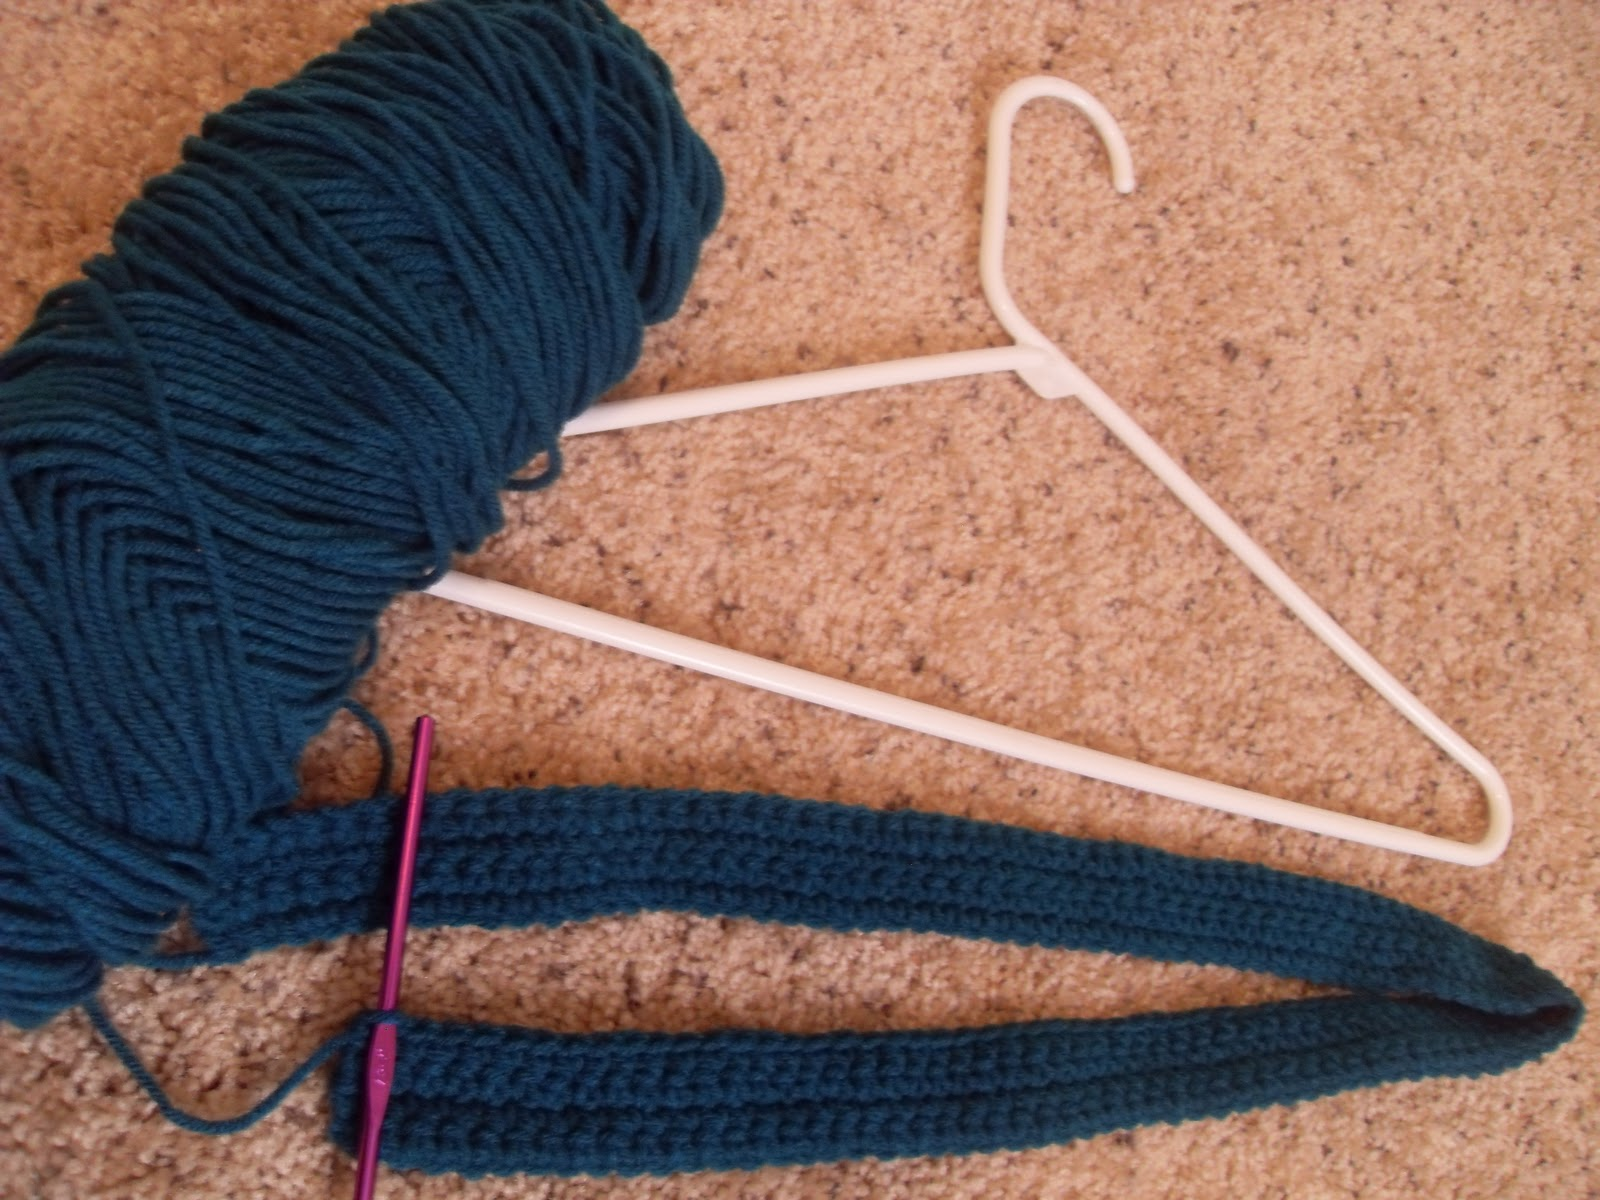 Crocheting On A Hanger : Something Beautiful: No-Slip Hangers - Crochet